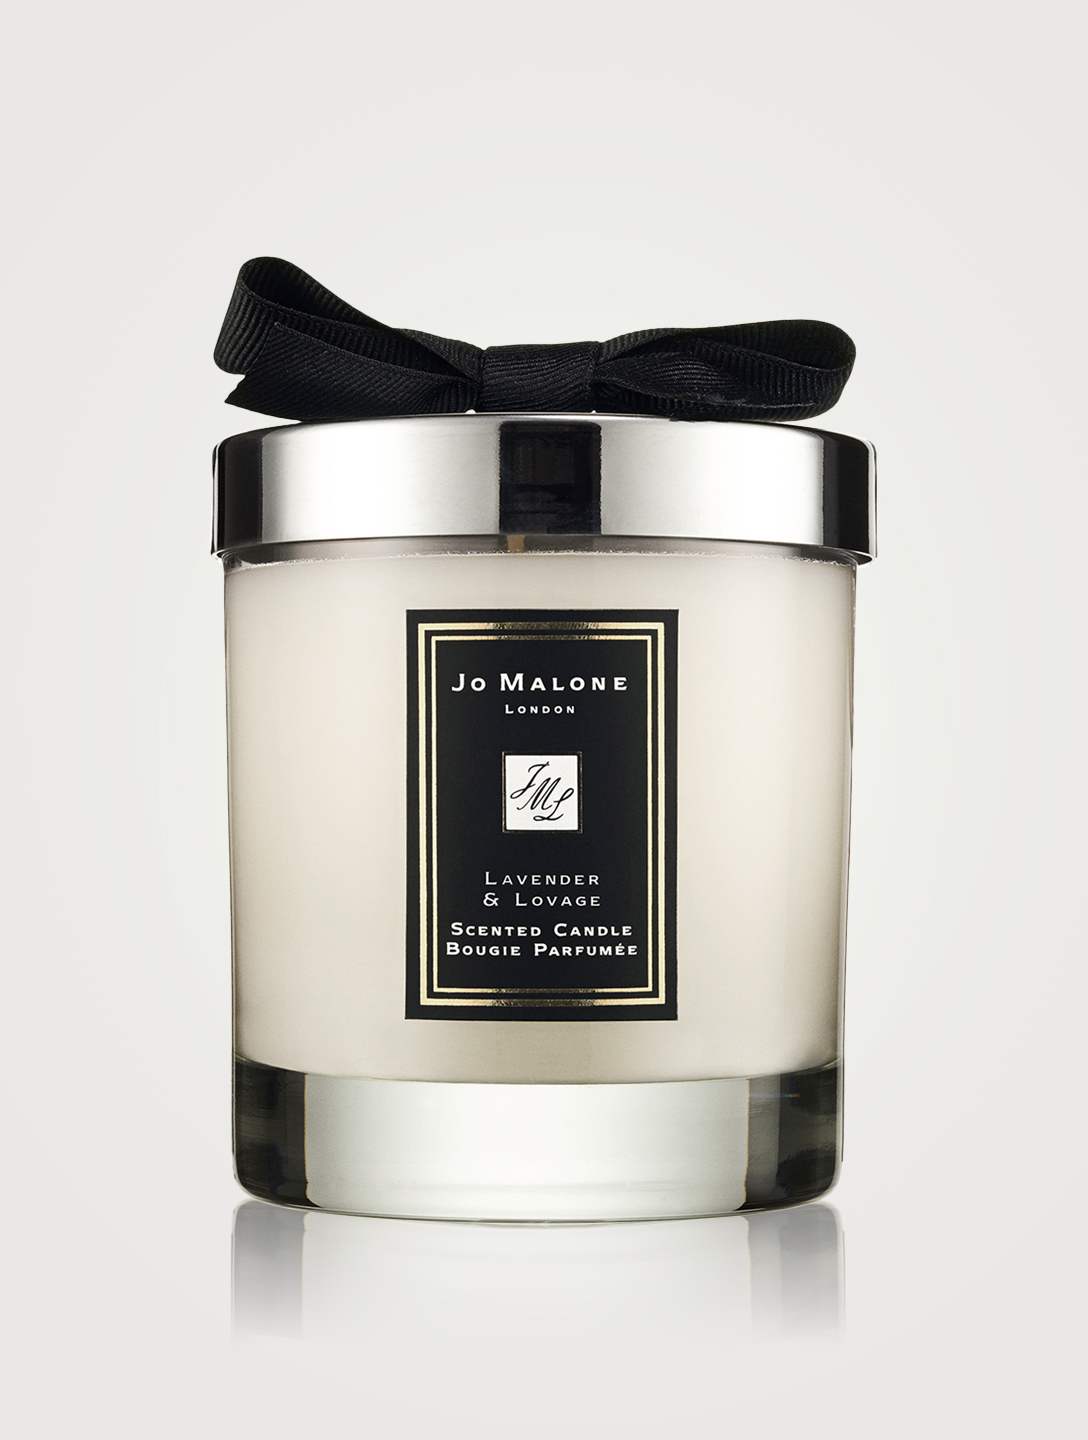 JO MALONE LONDON Lavender & Lovage Home Candle Beauty